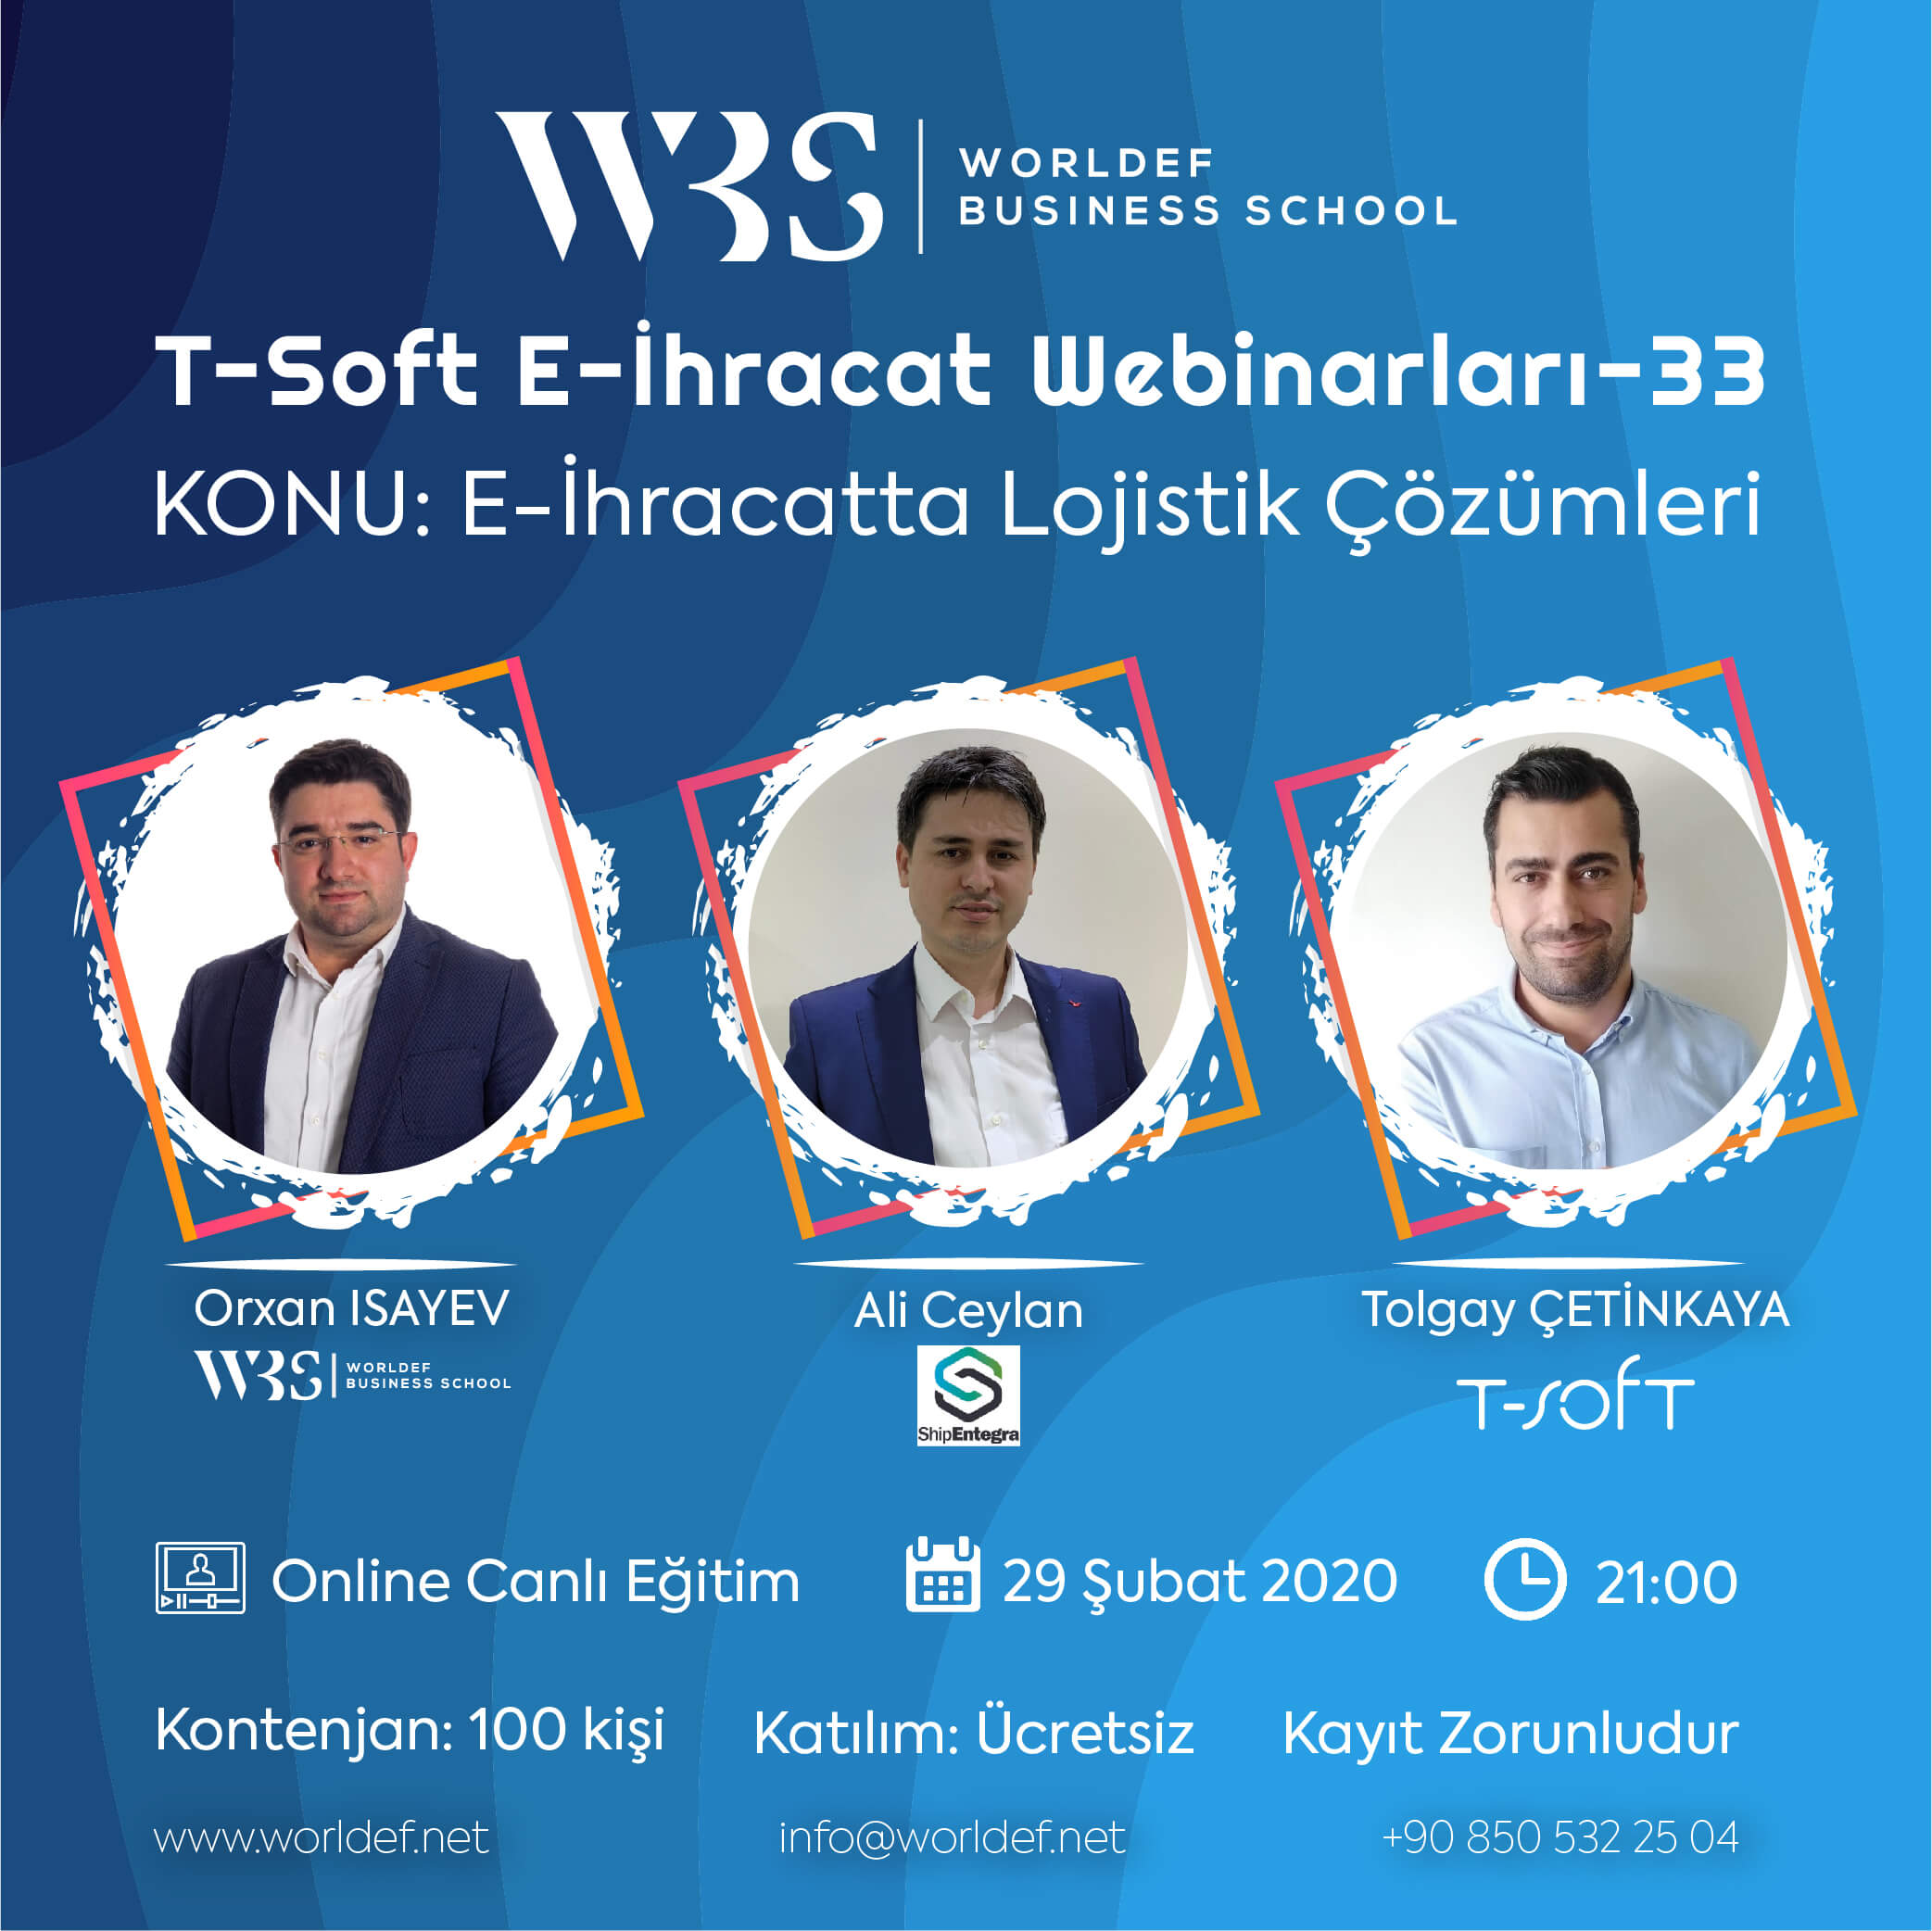 During the Cross-Border E-Commerce Webinars week, we will discuss the logistics issue, which has an important place in cross-border e-commerce! Our guest will be Ali Ceylan, founder of ShipEntegra!